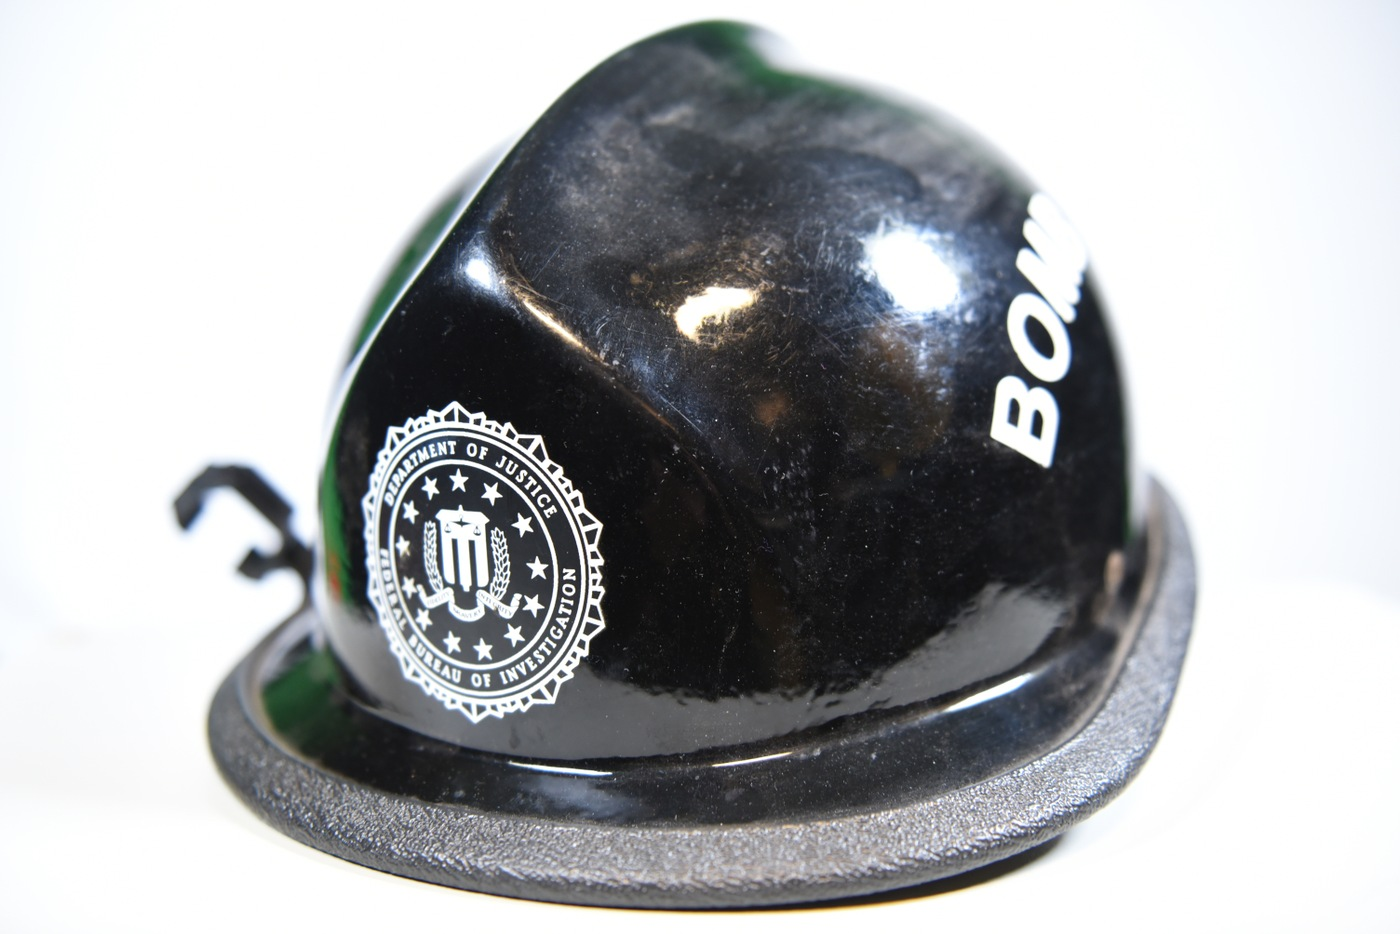 The protective hard hat worn by FBI Oklahoma City Special Agent Barry Black during the recovery and investigation of the Oklahoma City bombing.